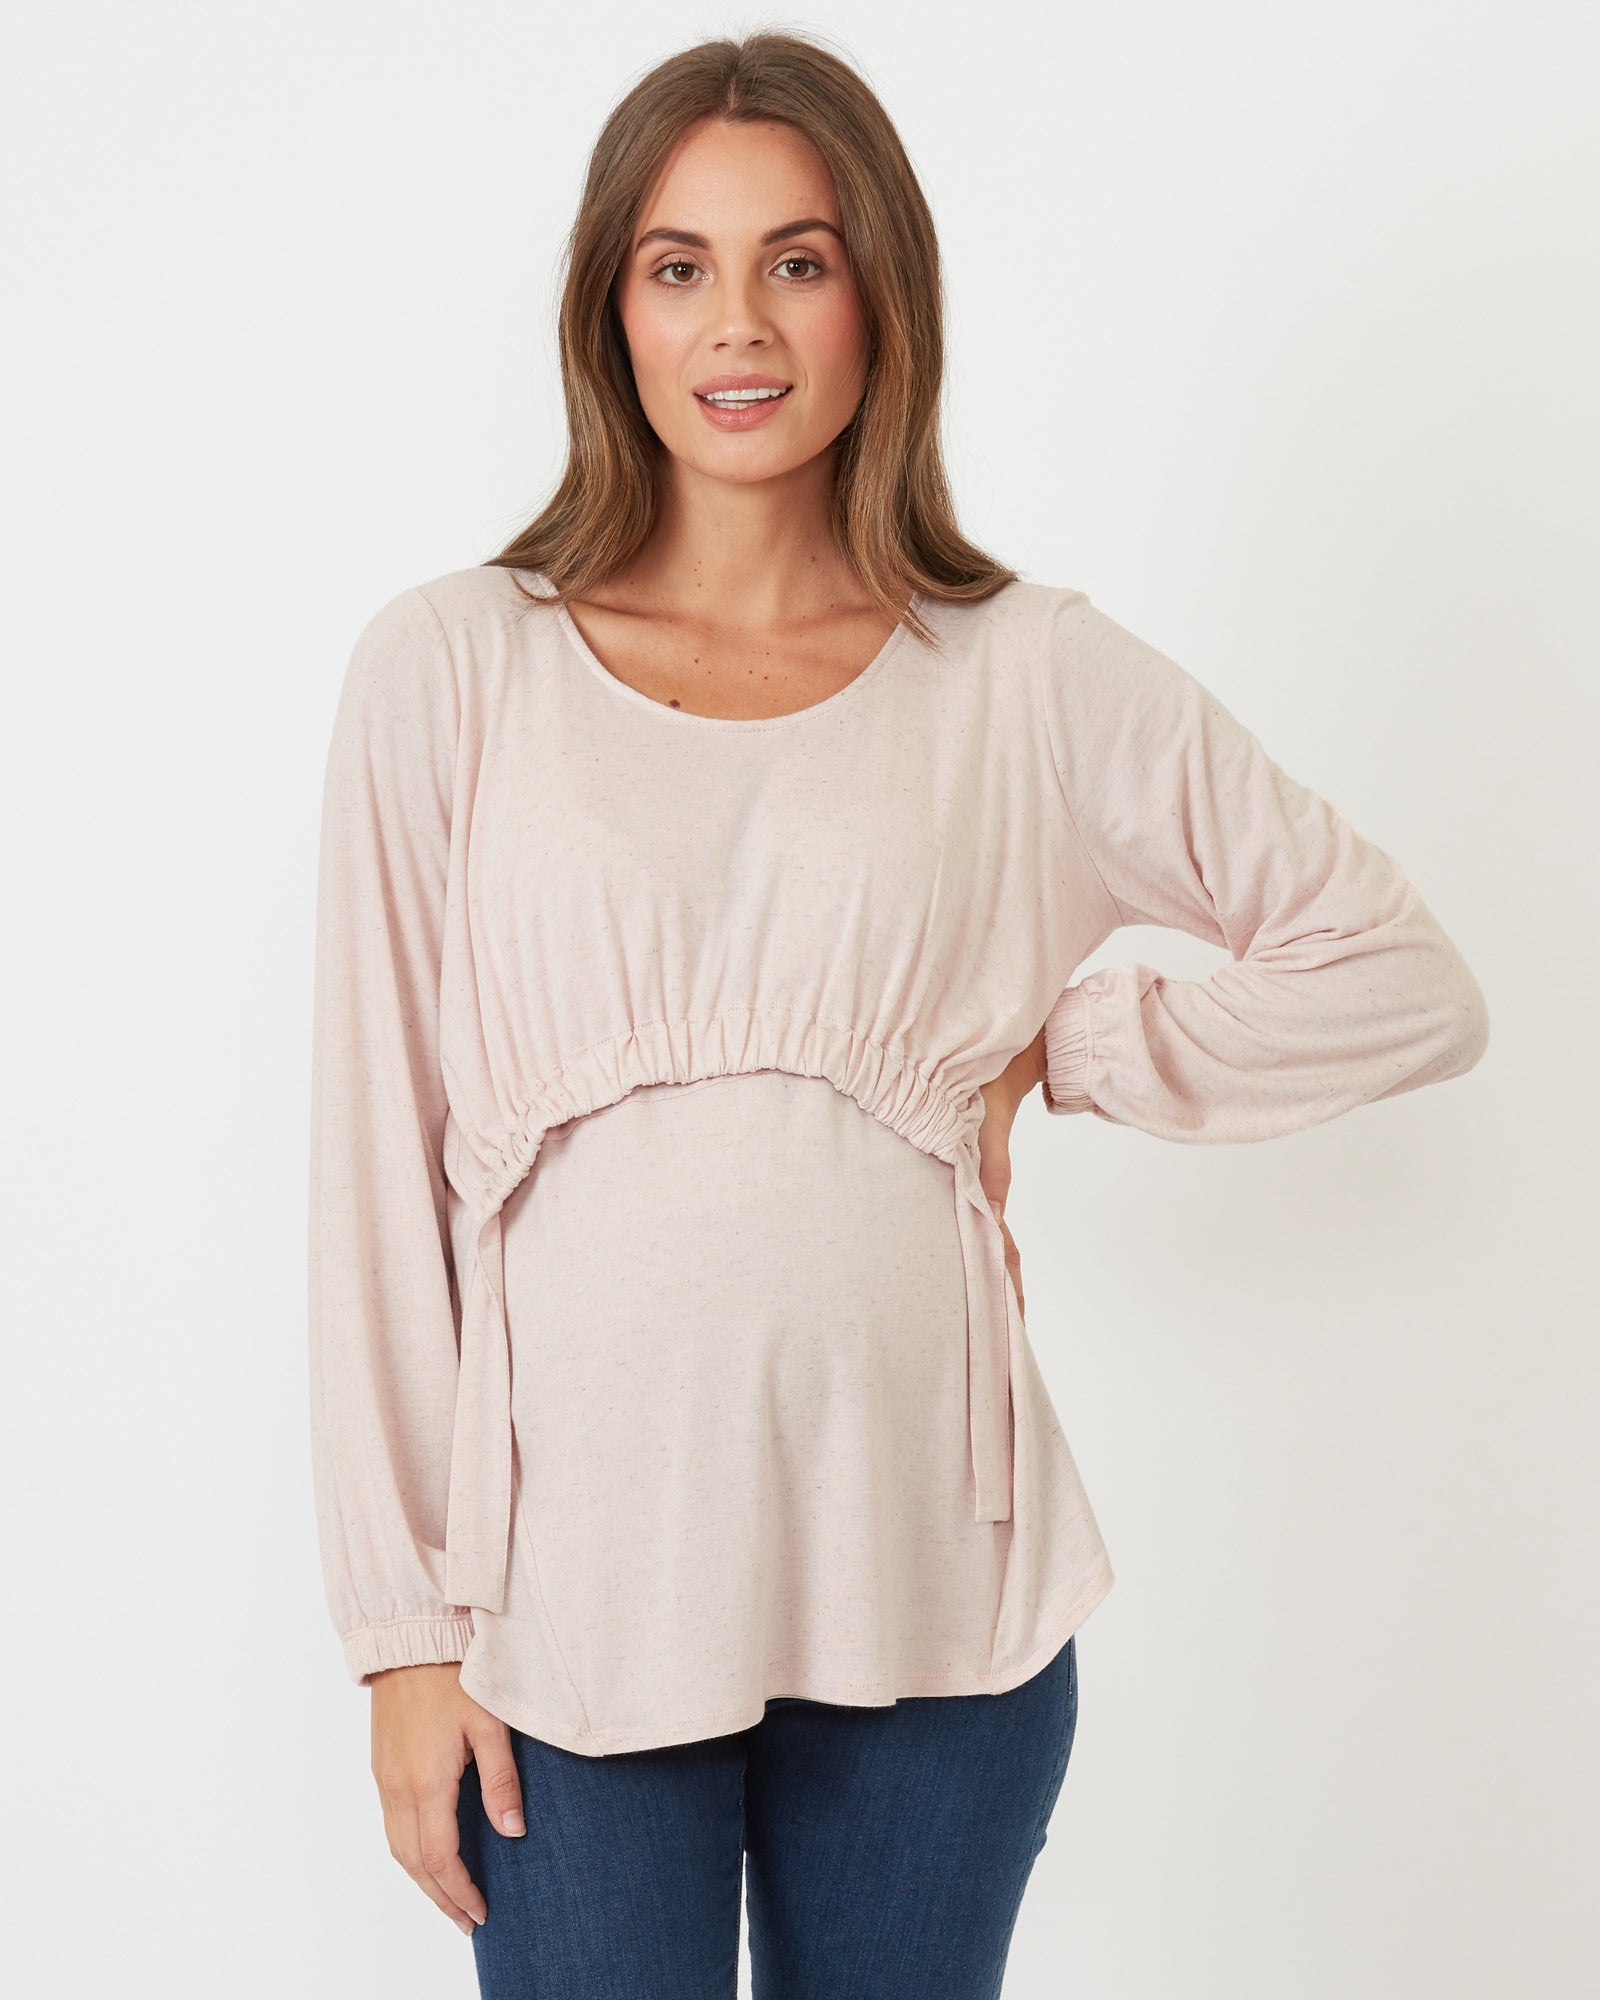 Karla Nursing Top